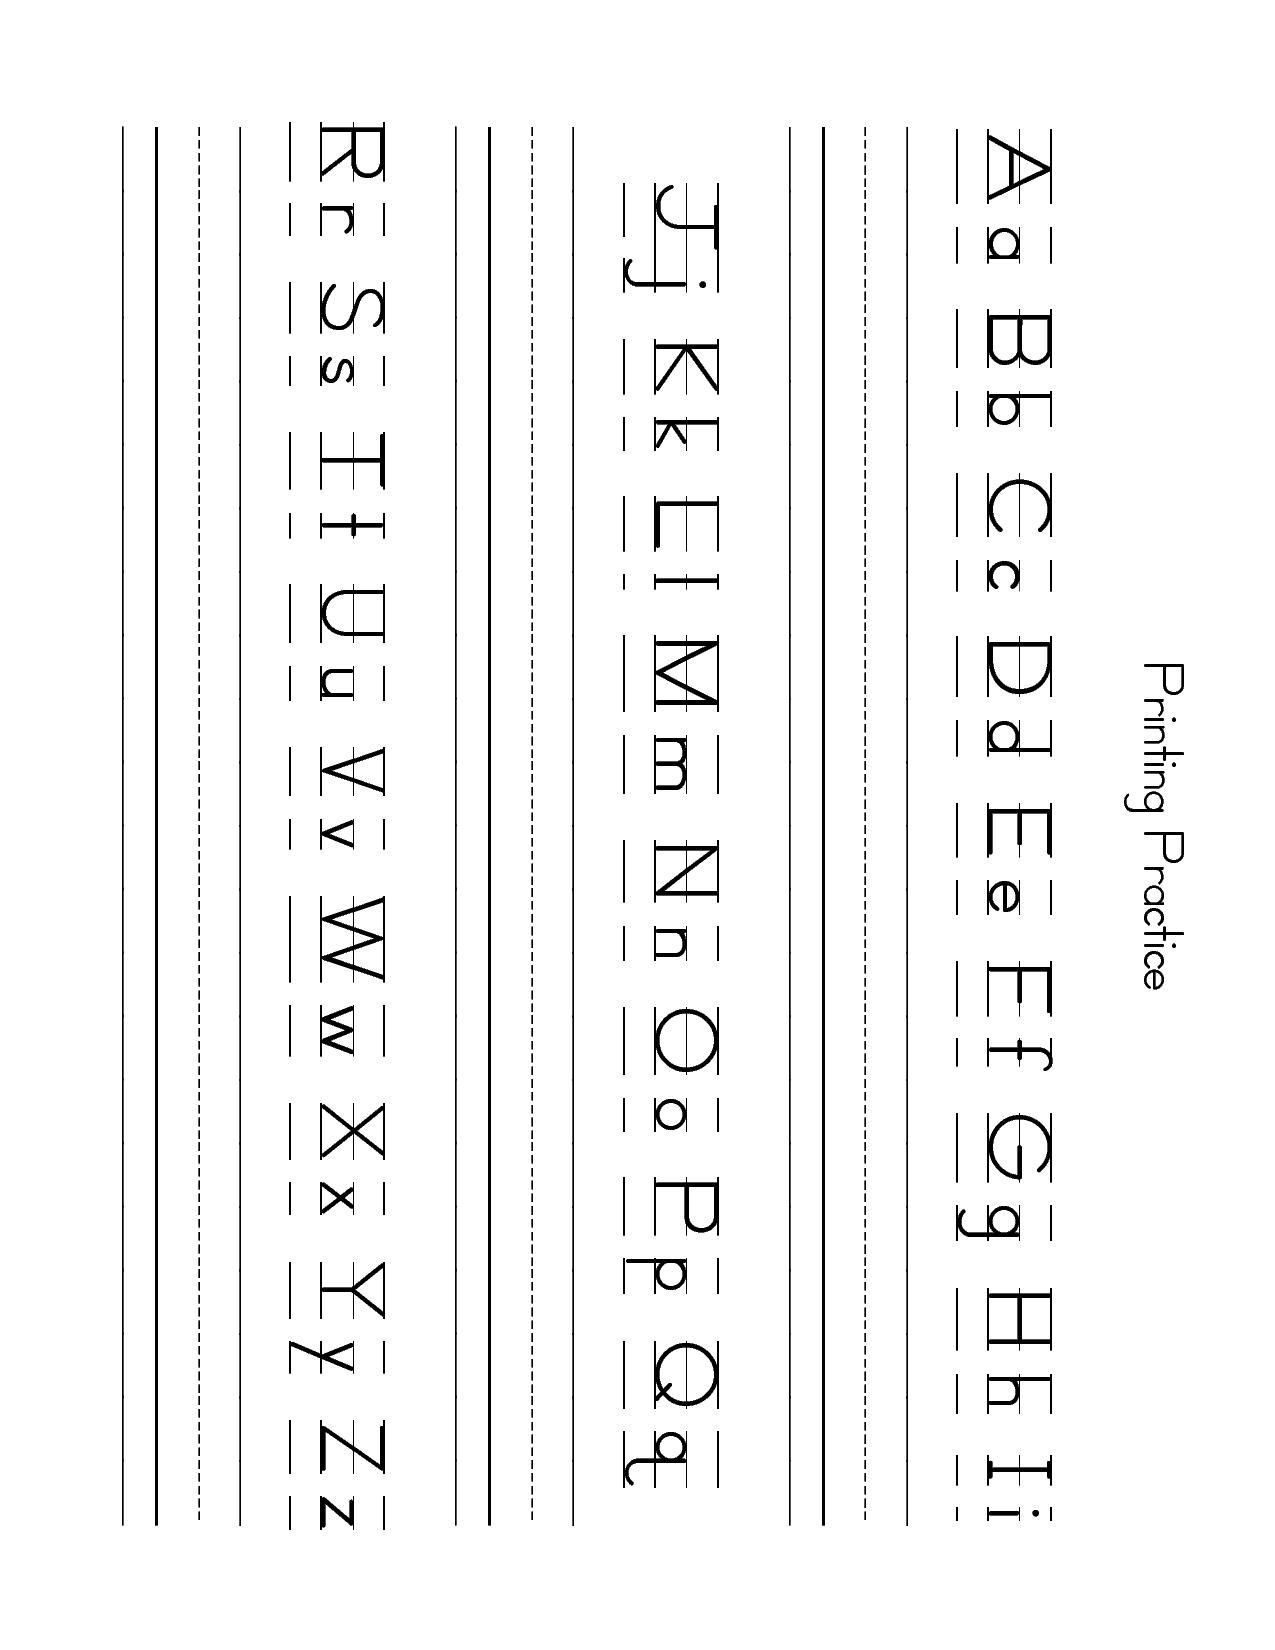 38 Printing The Alphabet Practice Pages Printing Practice Alphabet Practice Letter Worksheets [ 1650 x 1275 Pixel ]